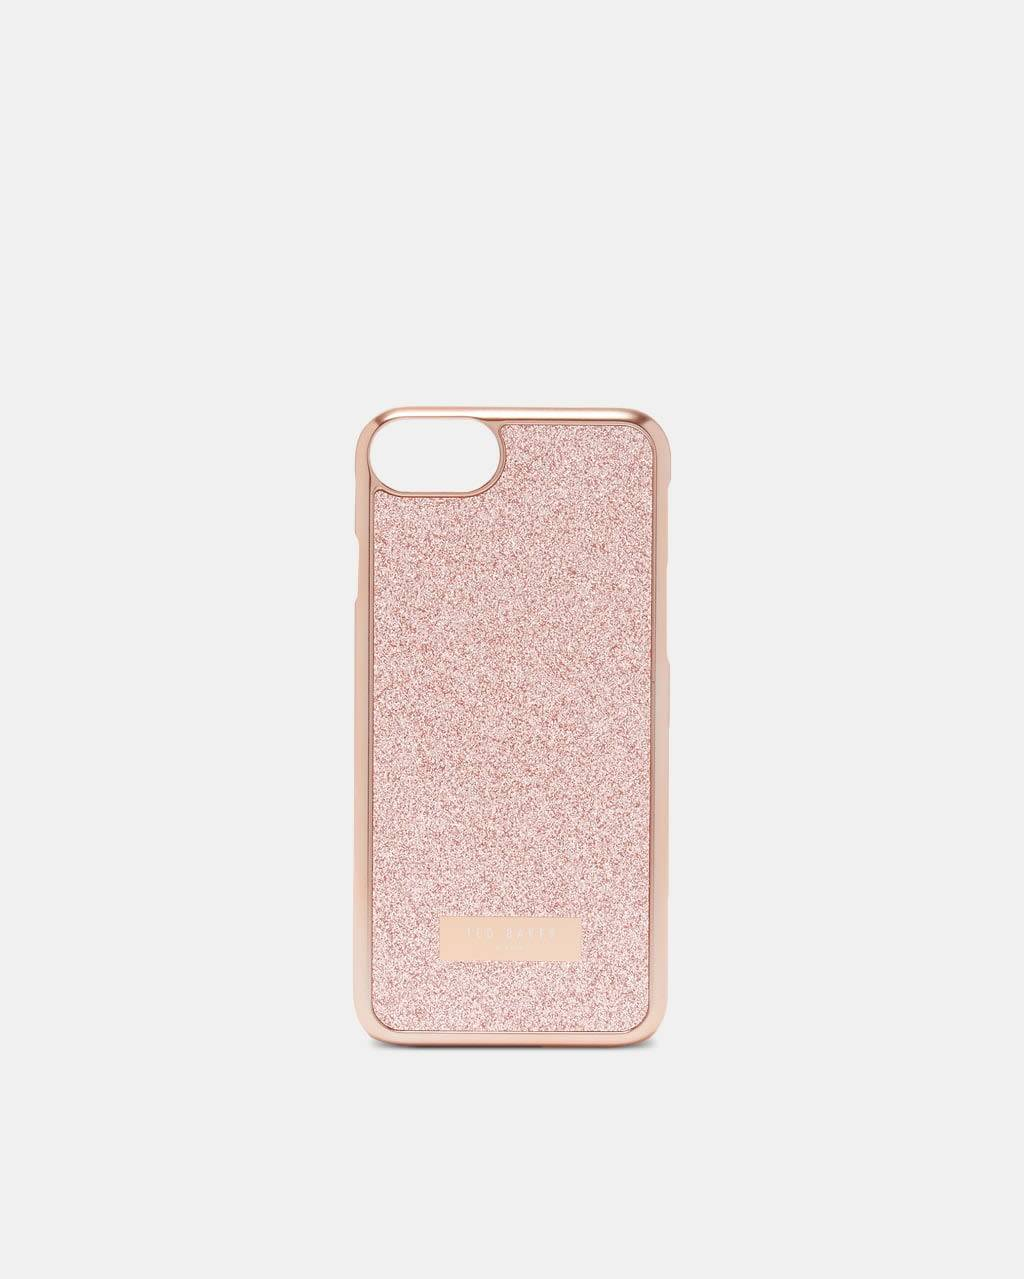 Ted Baker Glitter Iphone 6/6s/7/8 Case  - Baby Pink - Size: One Size